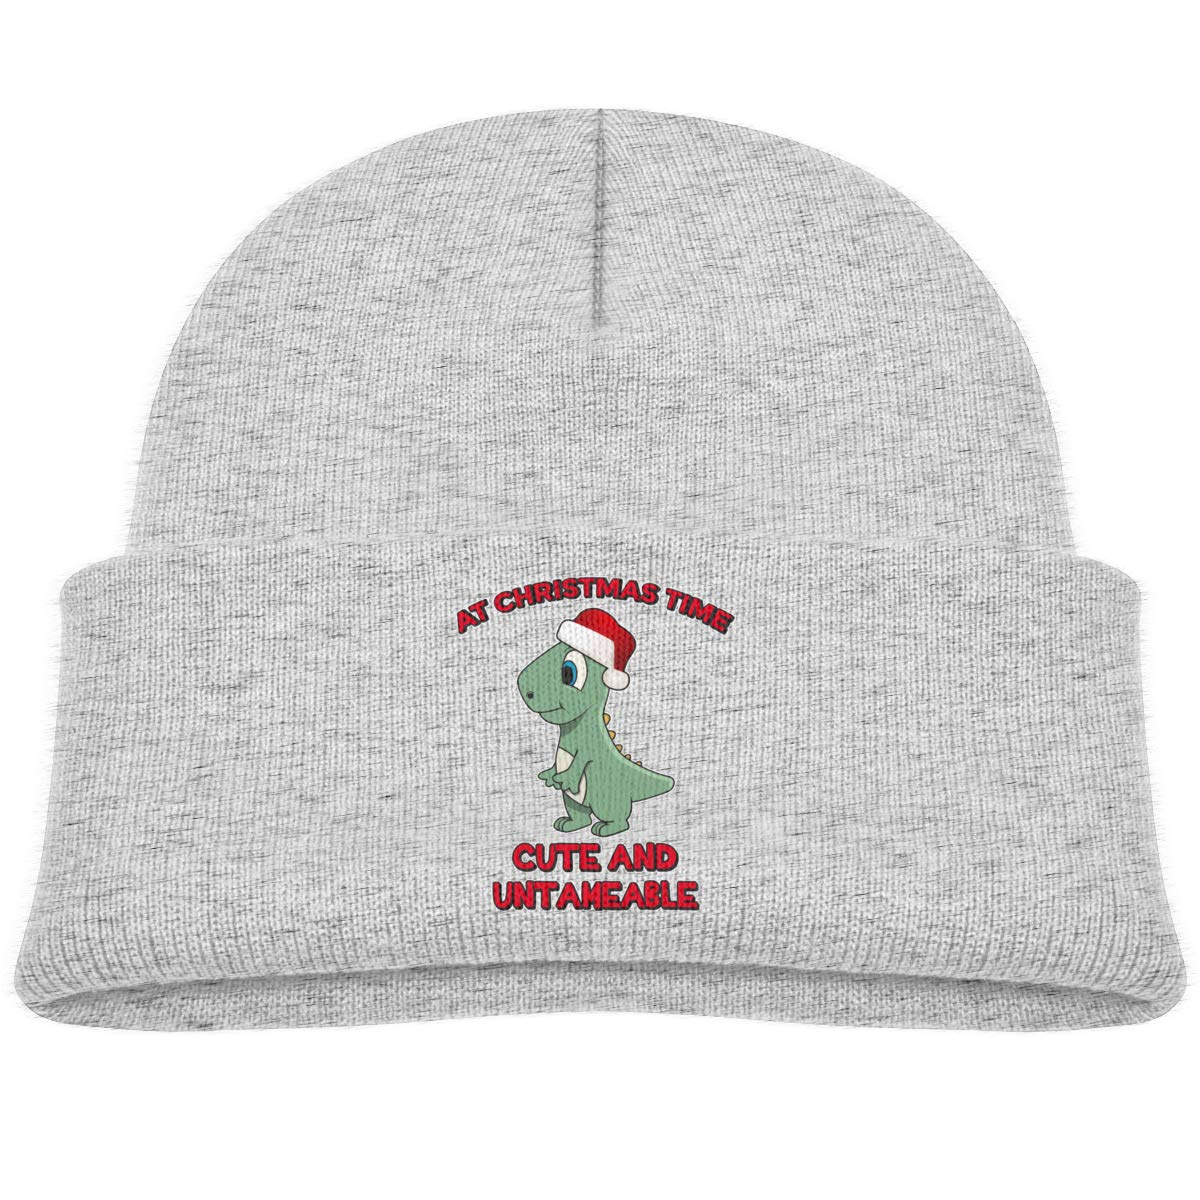 Moniery at Christmas Time Cute and Untameable Skull Cap Toddler